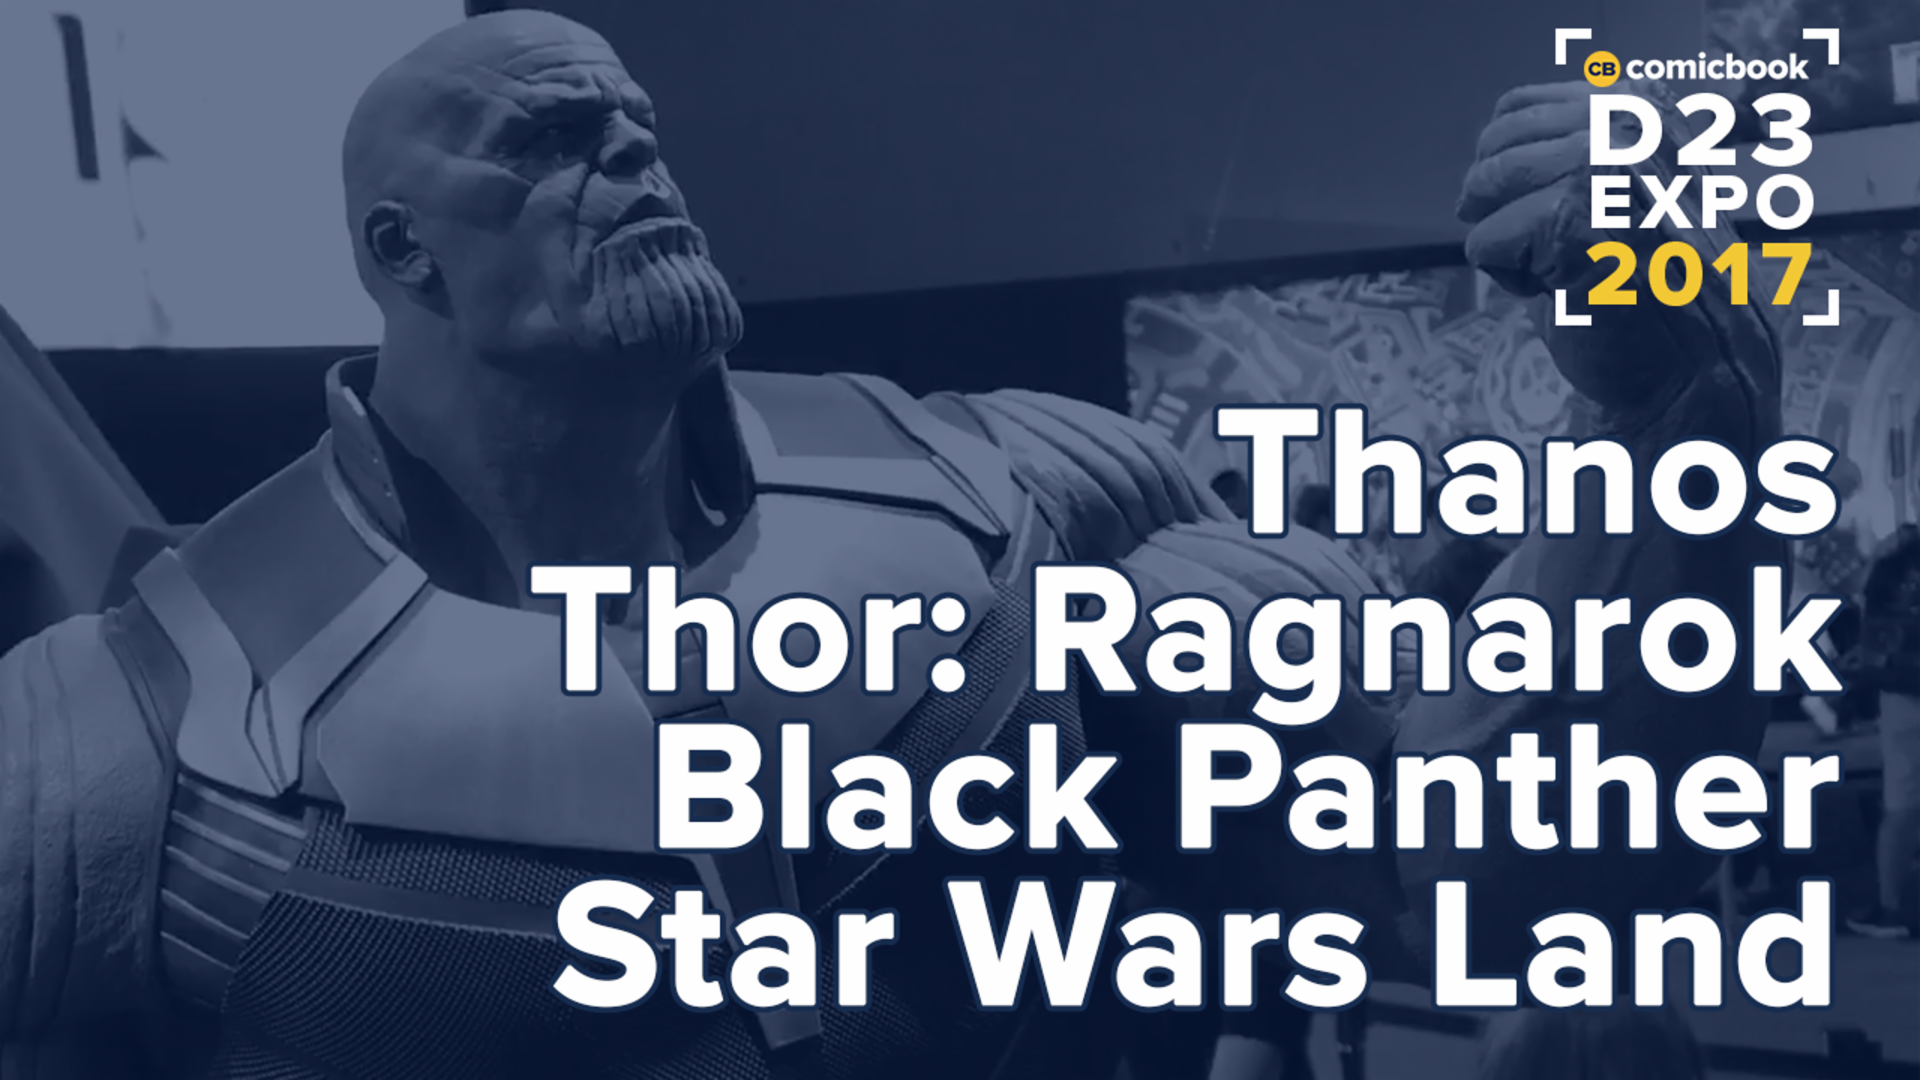 D23- First Look at Thanos, Black Panther, Star Wars, and More! screen capture